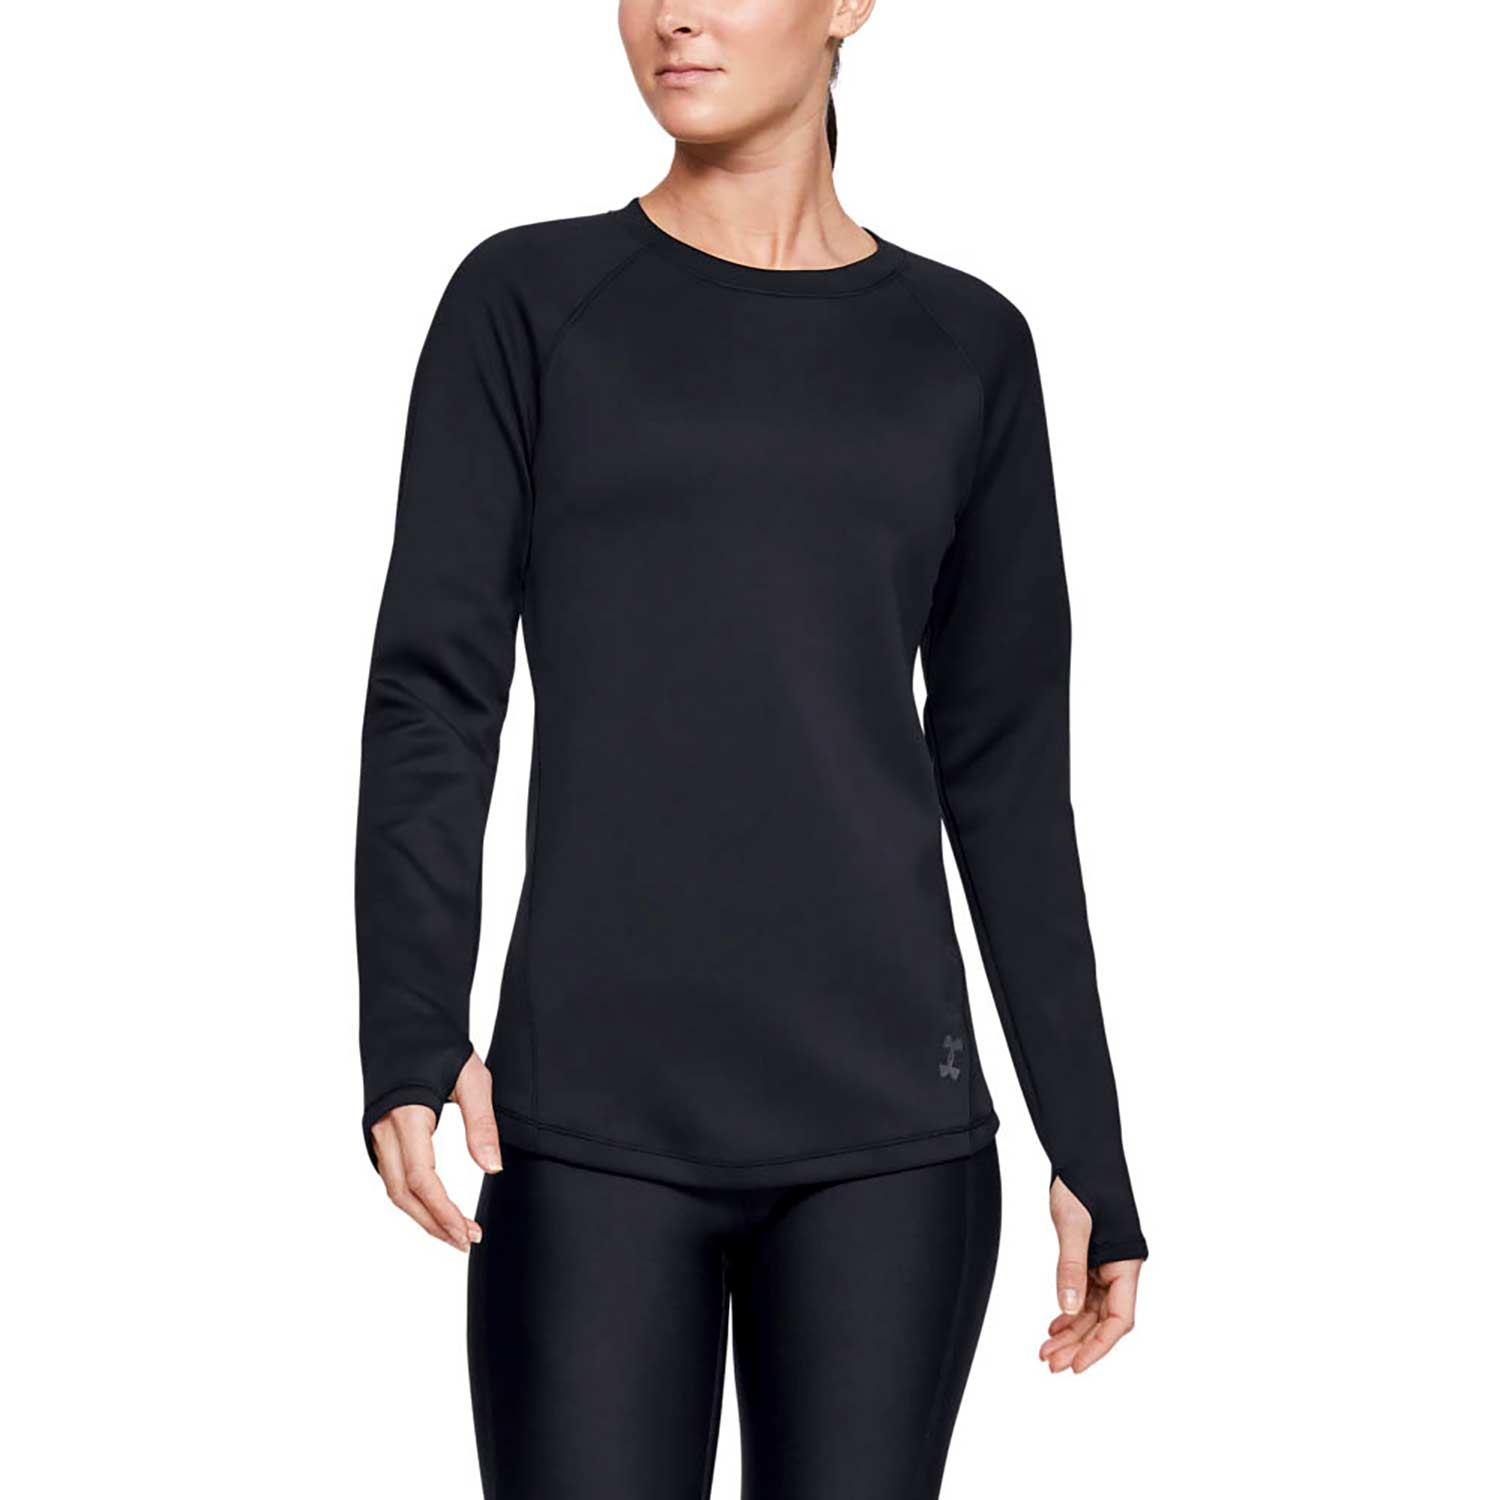 Under Armour Womens ColdGear Long Sleeve Shirt